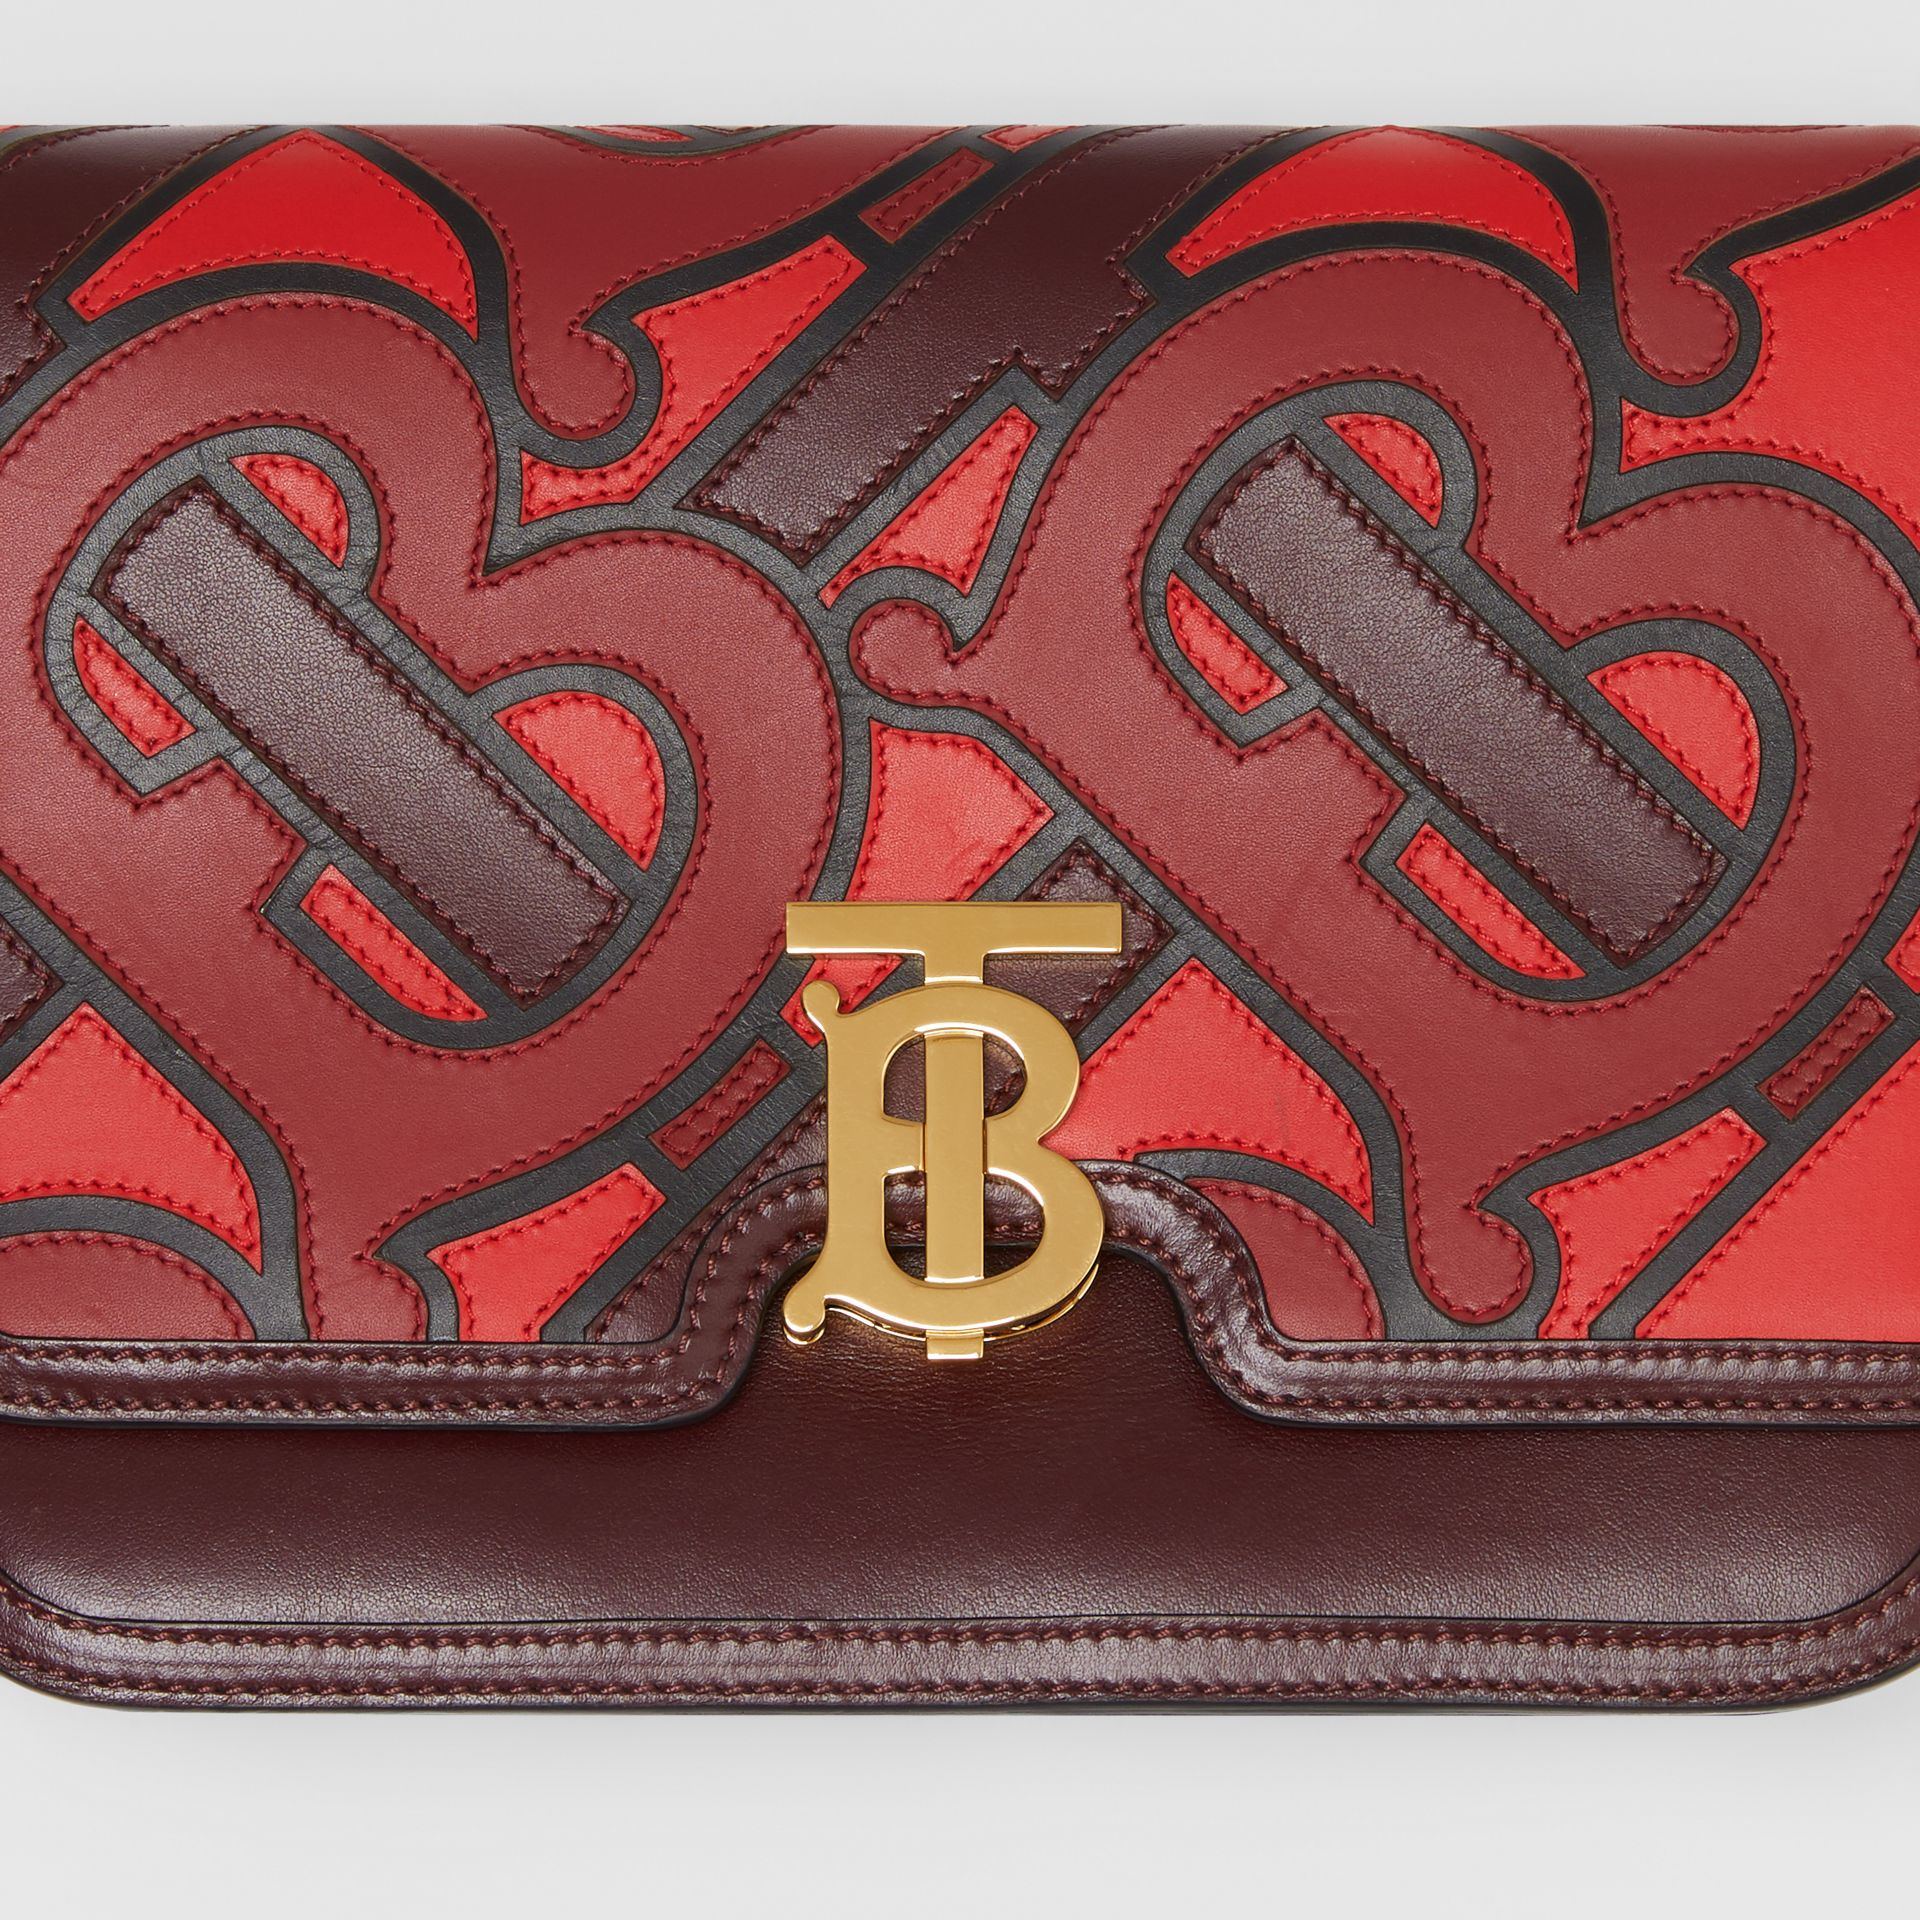 Medium Monogram Appliqué Leather TB Bag in Oxblood - Women | Burberry Singapore - gallery image 1